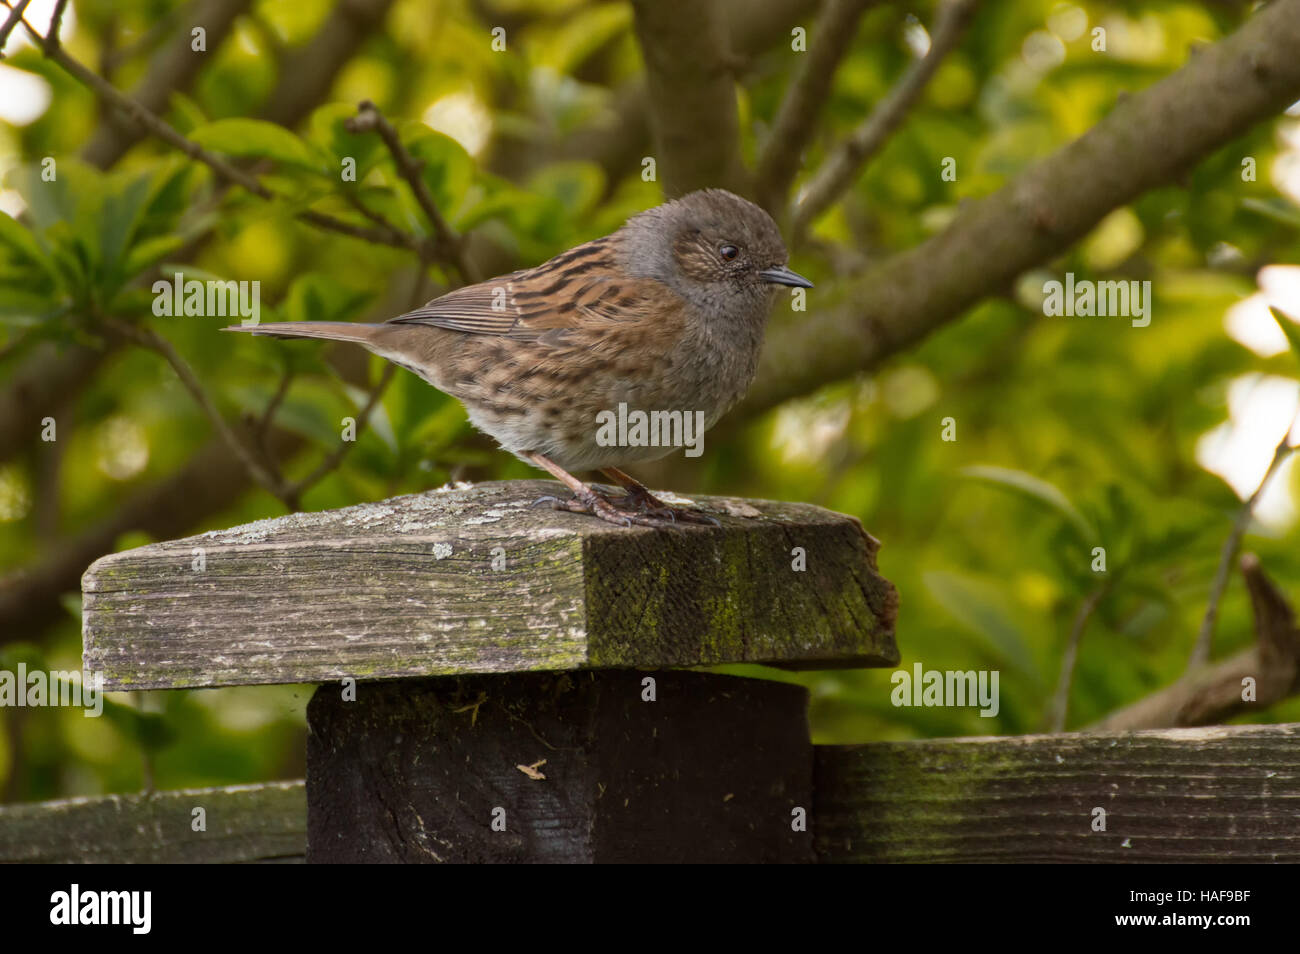 A Dunnock (Prunella modularis) standing on a wooden fence post. - Stock Image